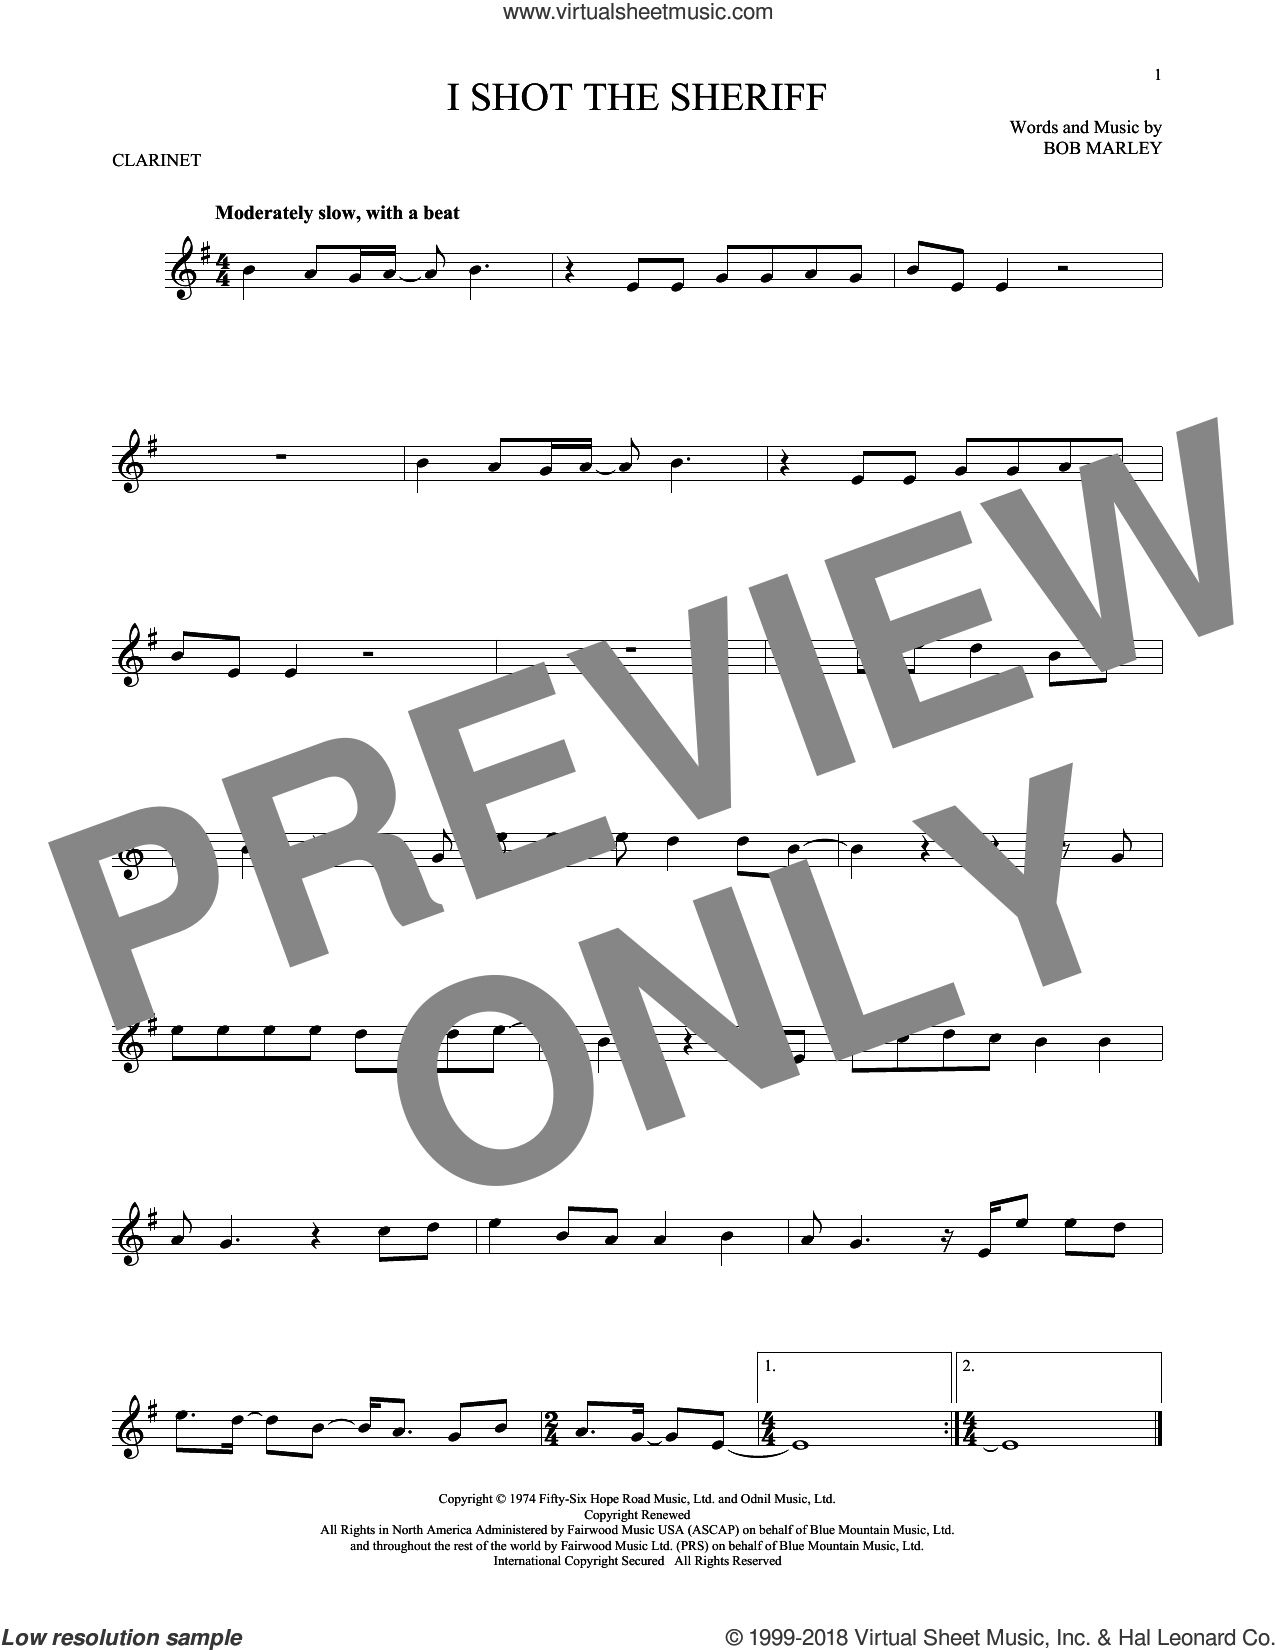 I Shot The Sheriff sheet music for clarinet solo by Bob Marley, Eric Clapton and Warren G, intermediate skill level